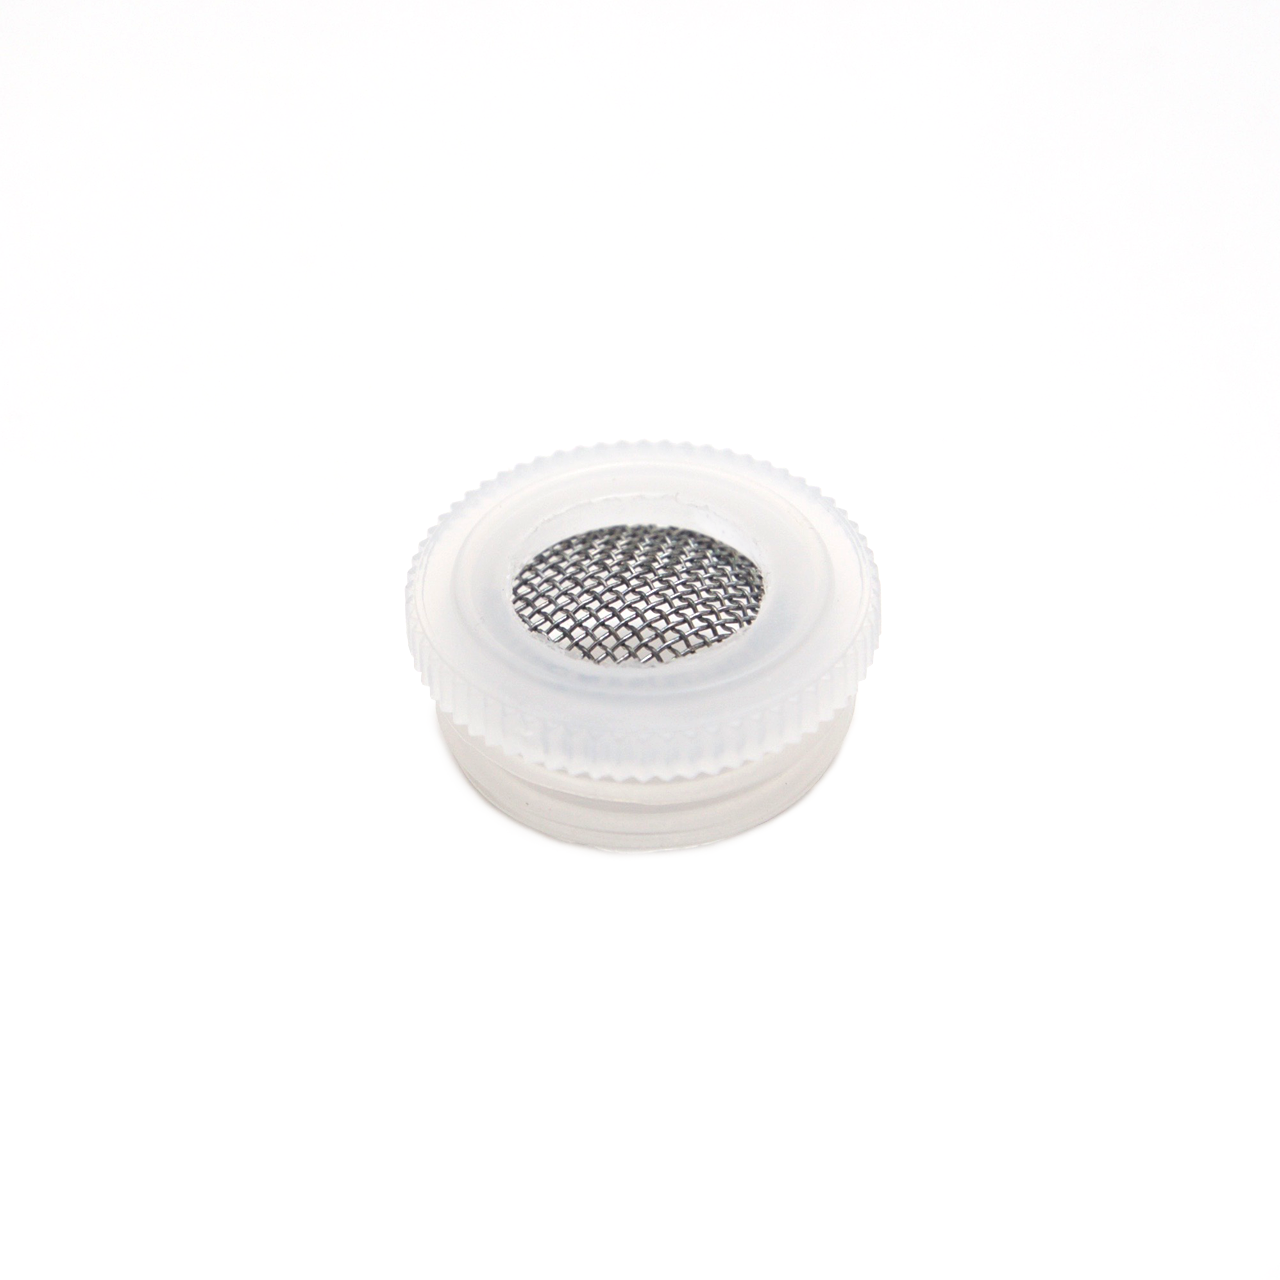 Efcolor Sieve/Sifter Top - Fits 10ml pots (small)